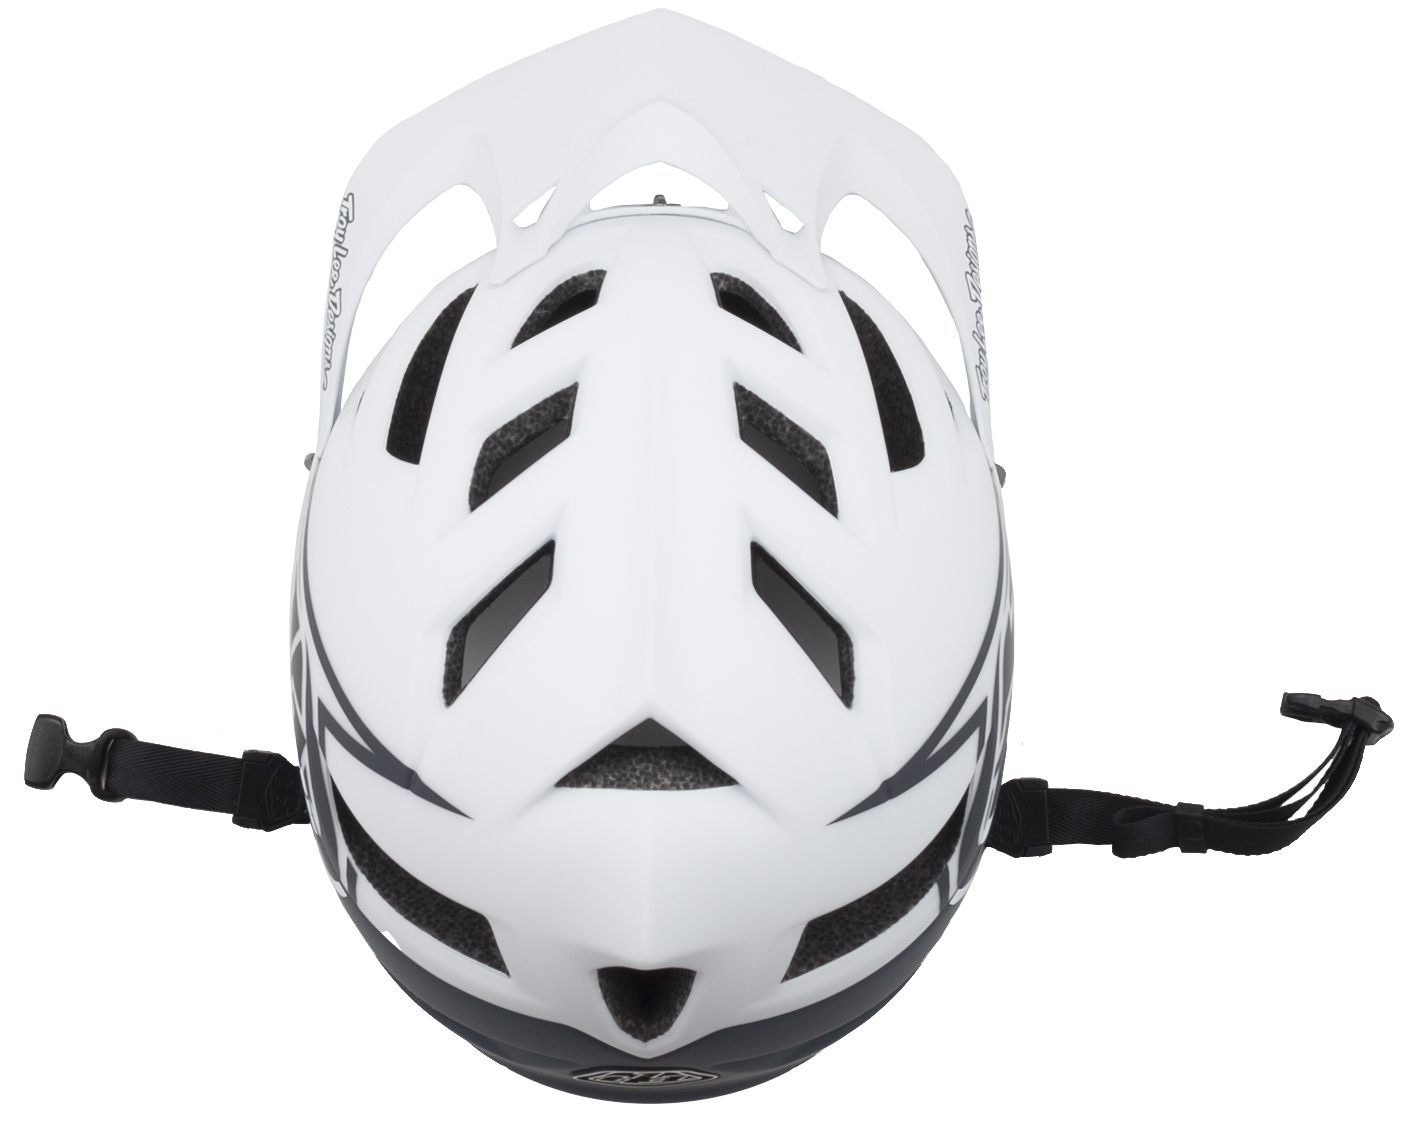 troy lee a1 drone helmet with Troy Lee Designs A1 Drone Helmet En on Troy Lee Designs A1 Helmet also Tld Troy Lee Designs A1 Helm Drone Weiss Grau additionally First Look 2015 Troy Lee Designs A1 D2 And D3 Helmets besides Troy Lee Designs A1 Casco All Mountain Casco Mod 2016 Pd48b6d8b33181aee580c7028dce67636 besides Troy Lee Designs Professional Motorcycle Riders Team Ktm Factory Ktm Motocross Supercoss Riders 2016.